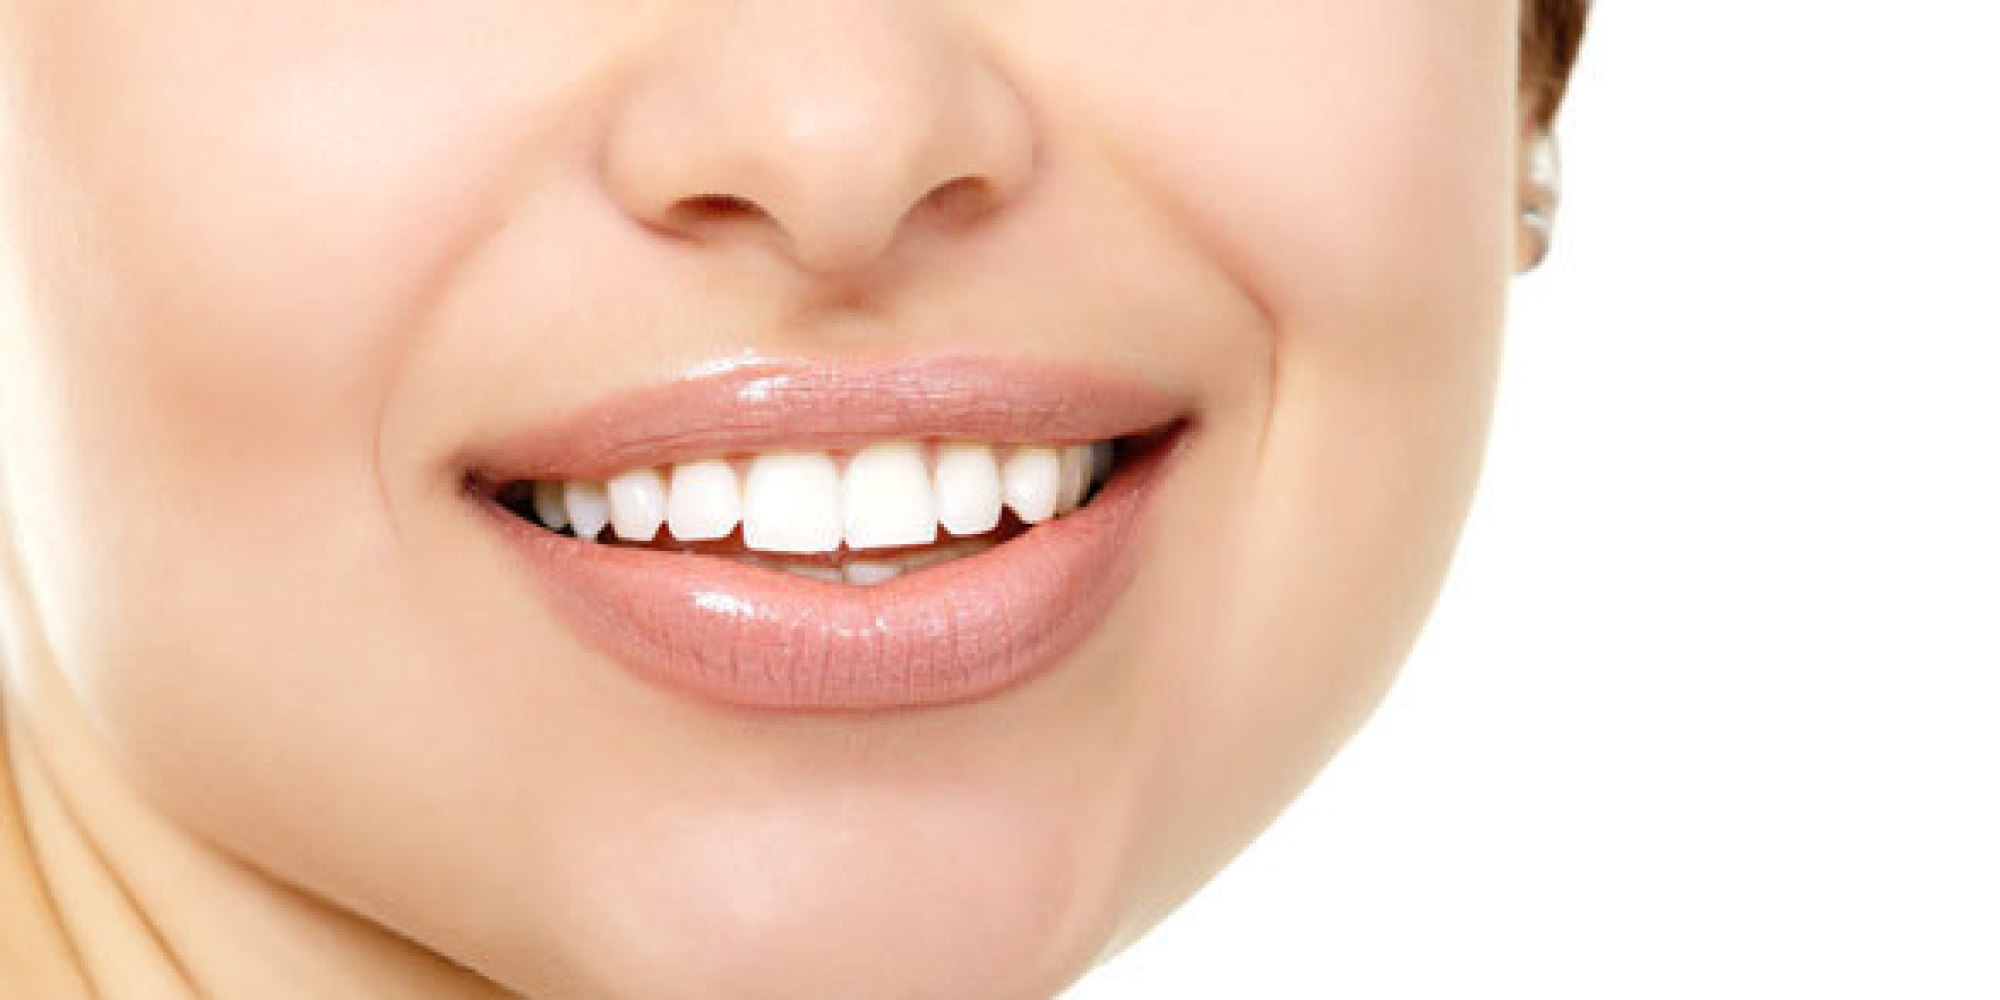 5 Foods That Stain Your Teeth